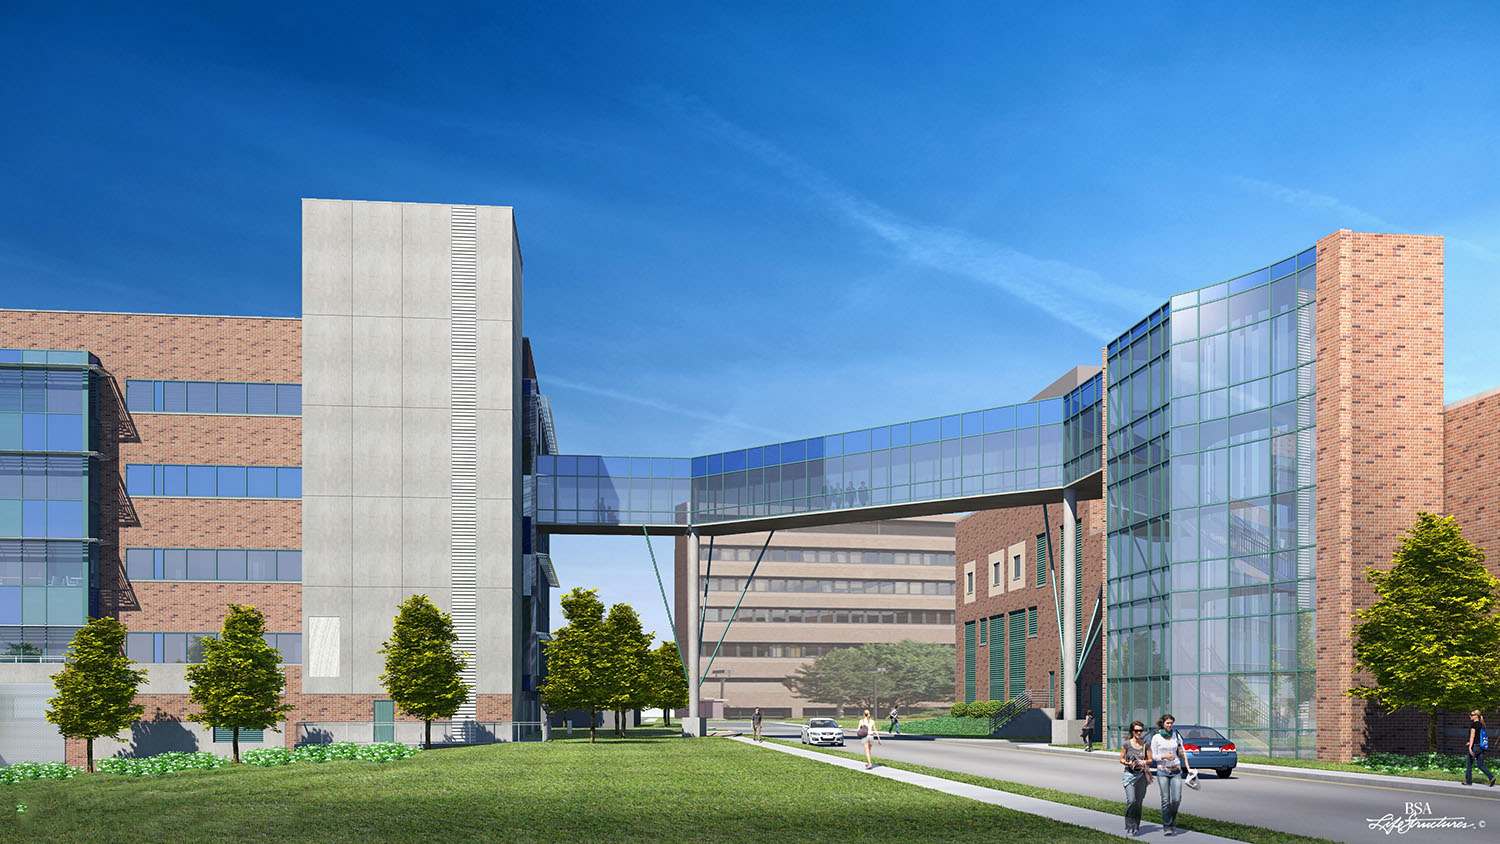 cmh new office bldg rendering bridge BSA.jpg